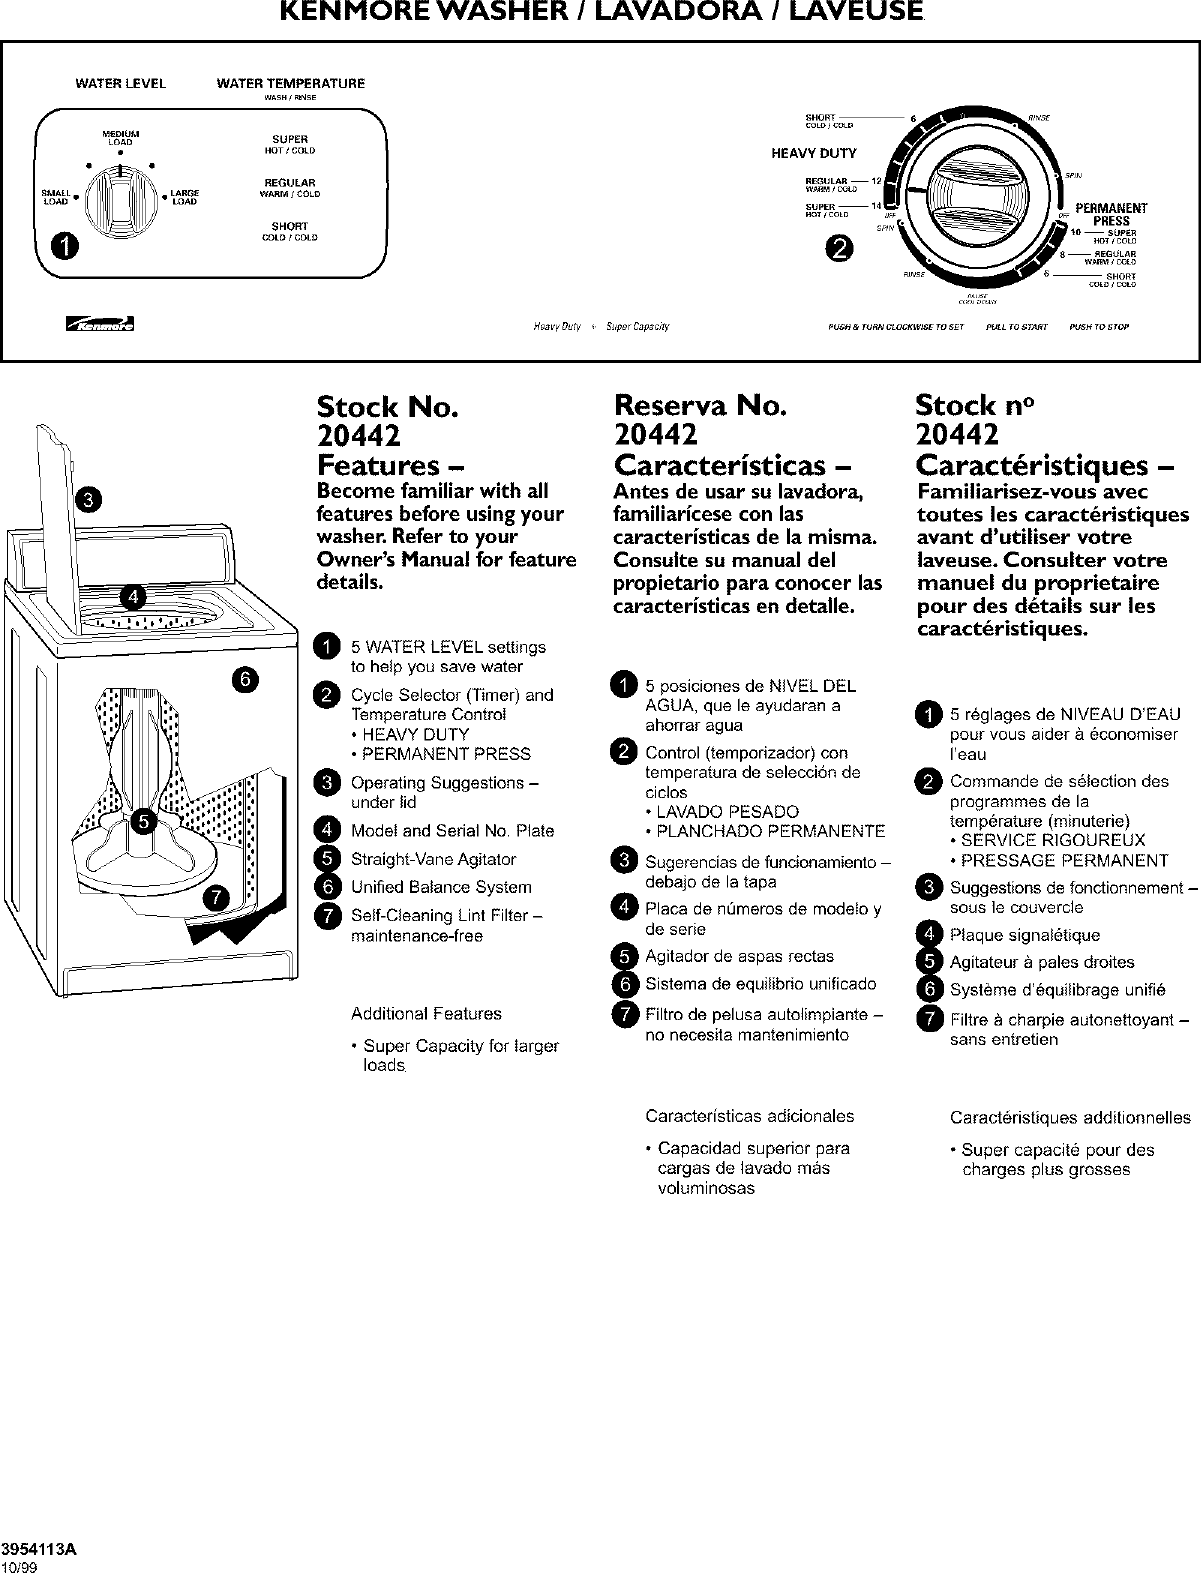 Kenmore 11020442990 User Manual WASHER Manuals And Guides